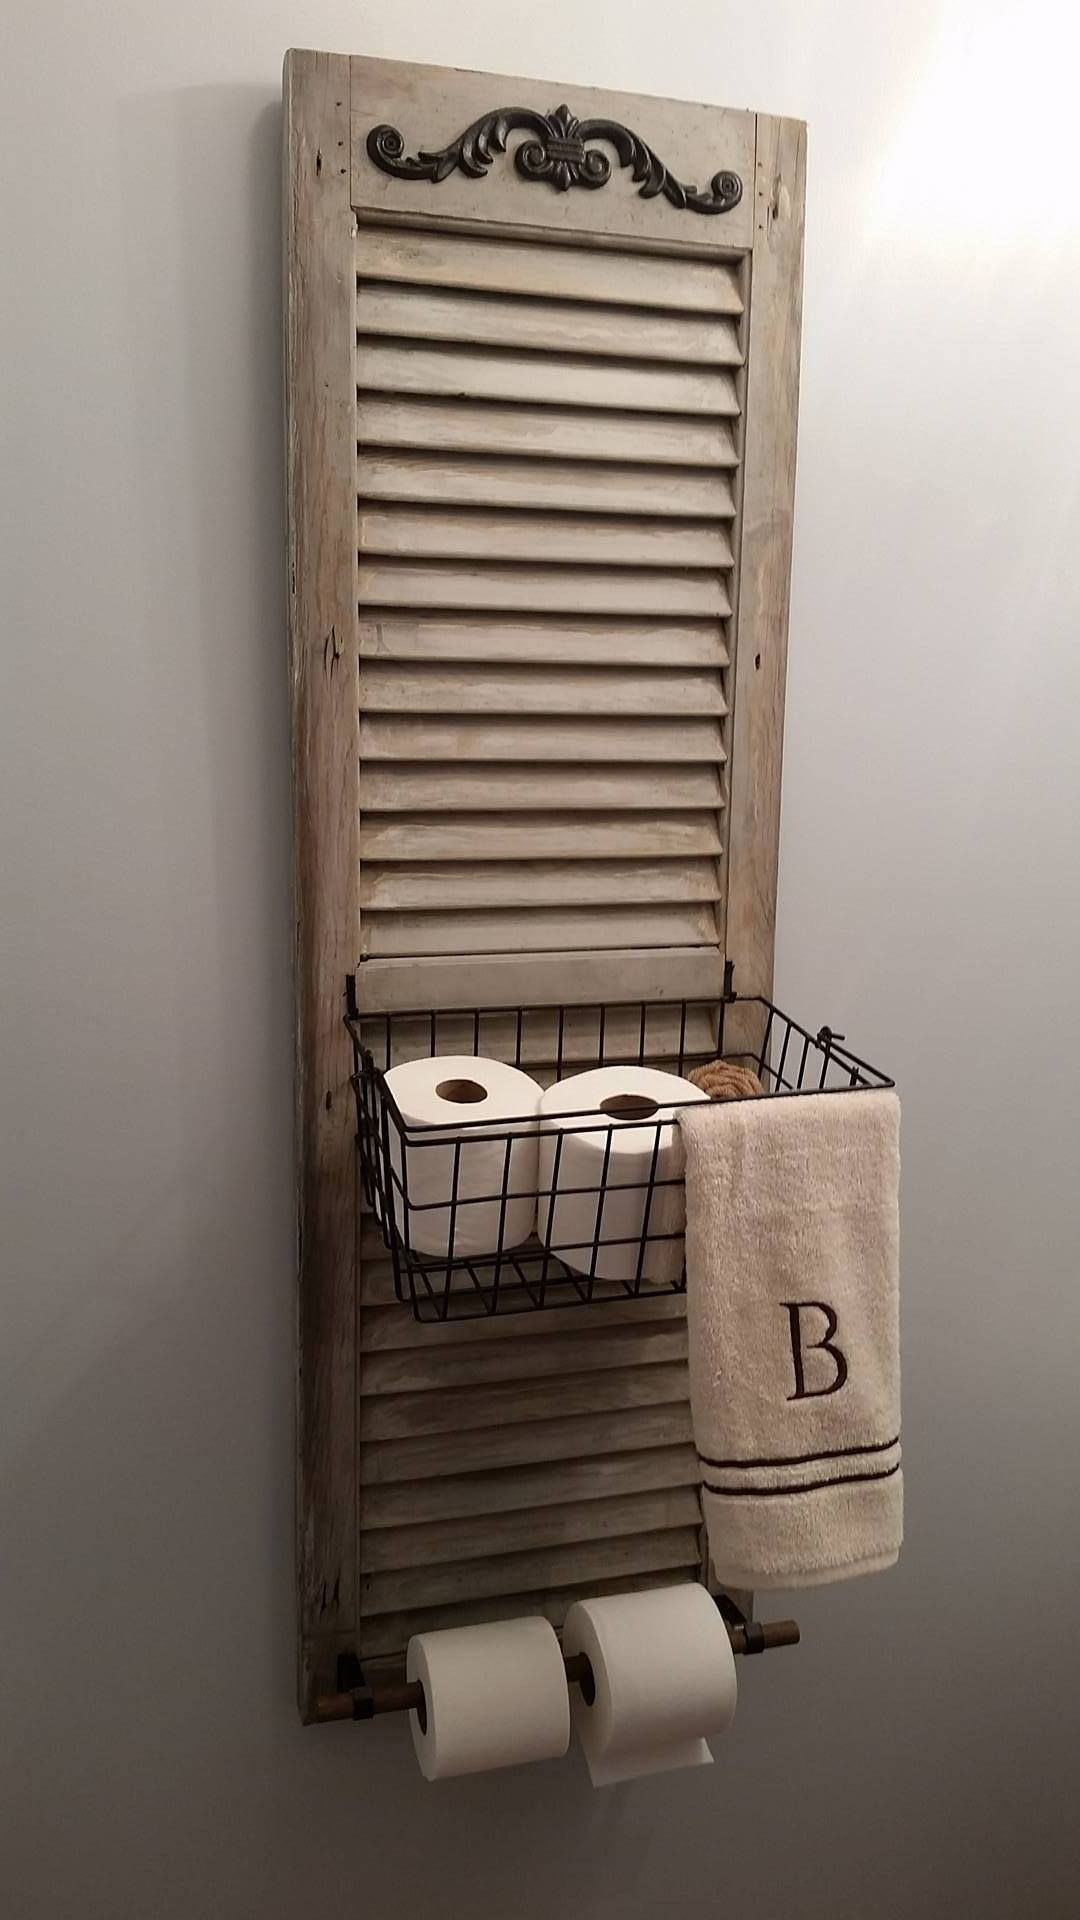 Decorating With Old Shutters.Repurpose Wood Shutter Idea For The Bathroom Decorate